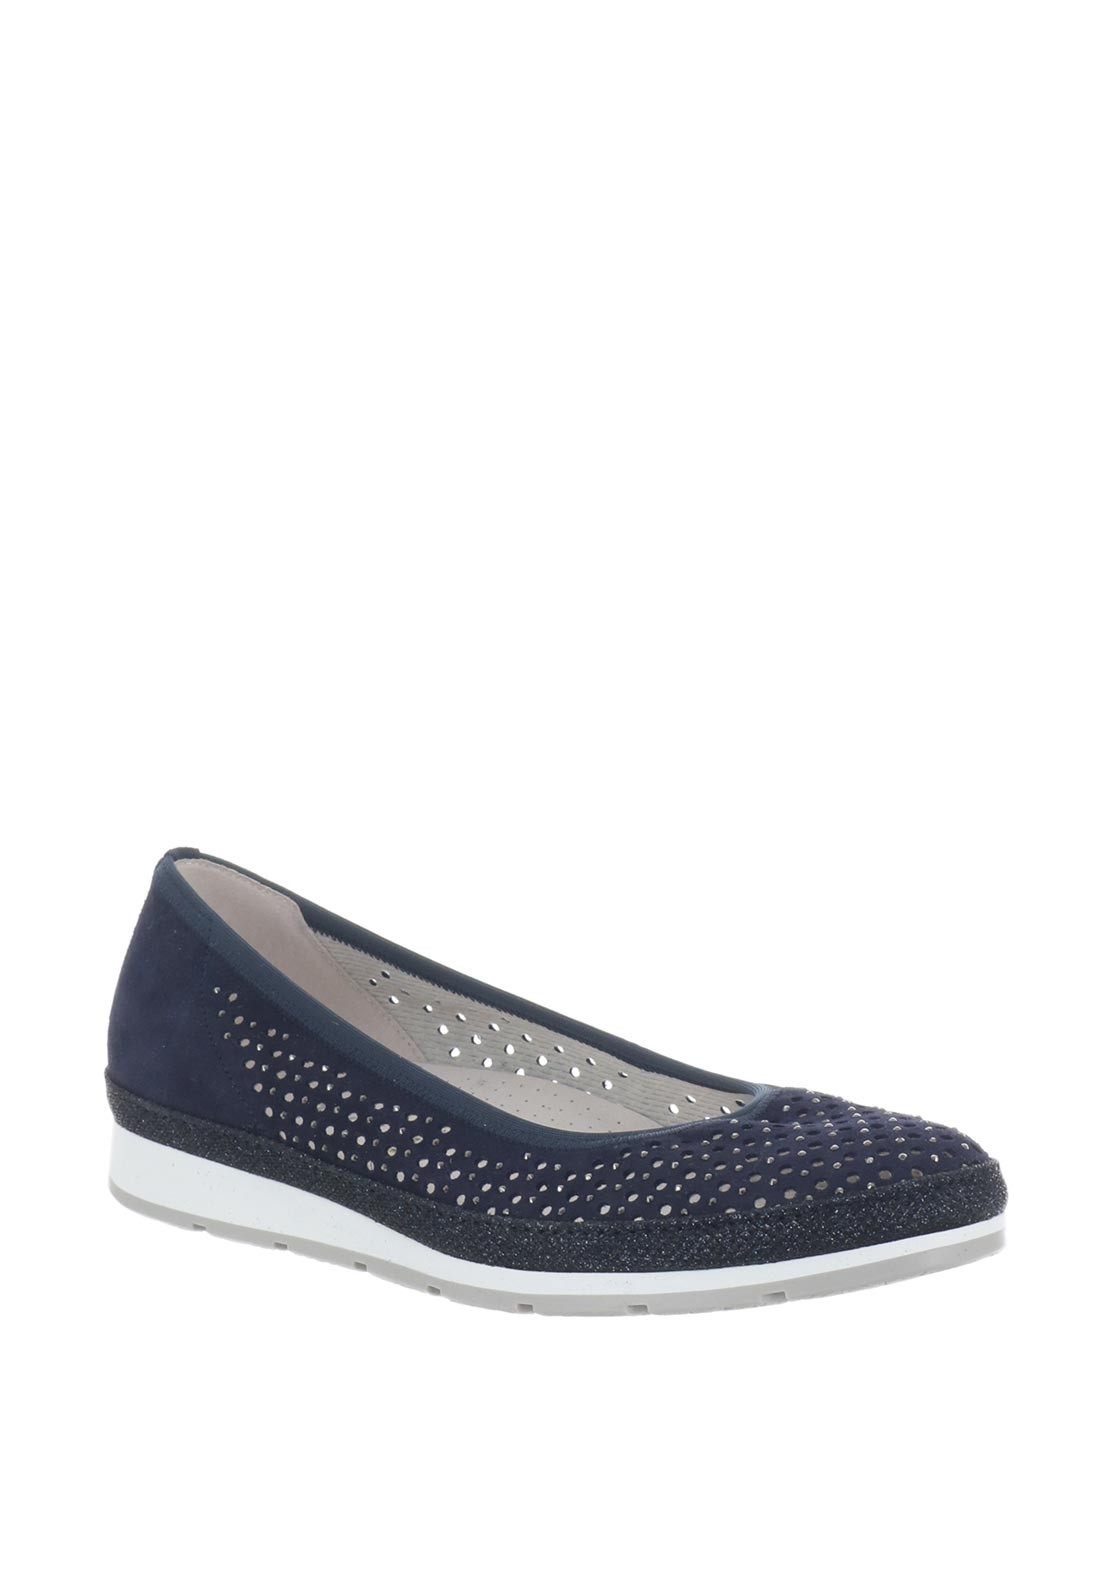 Gabor Perforated Gem Pumps, Navy